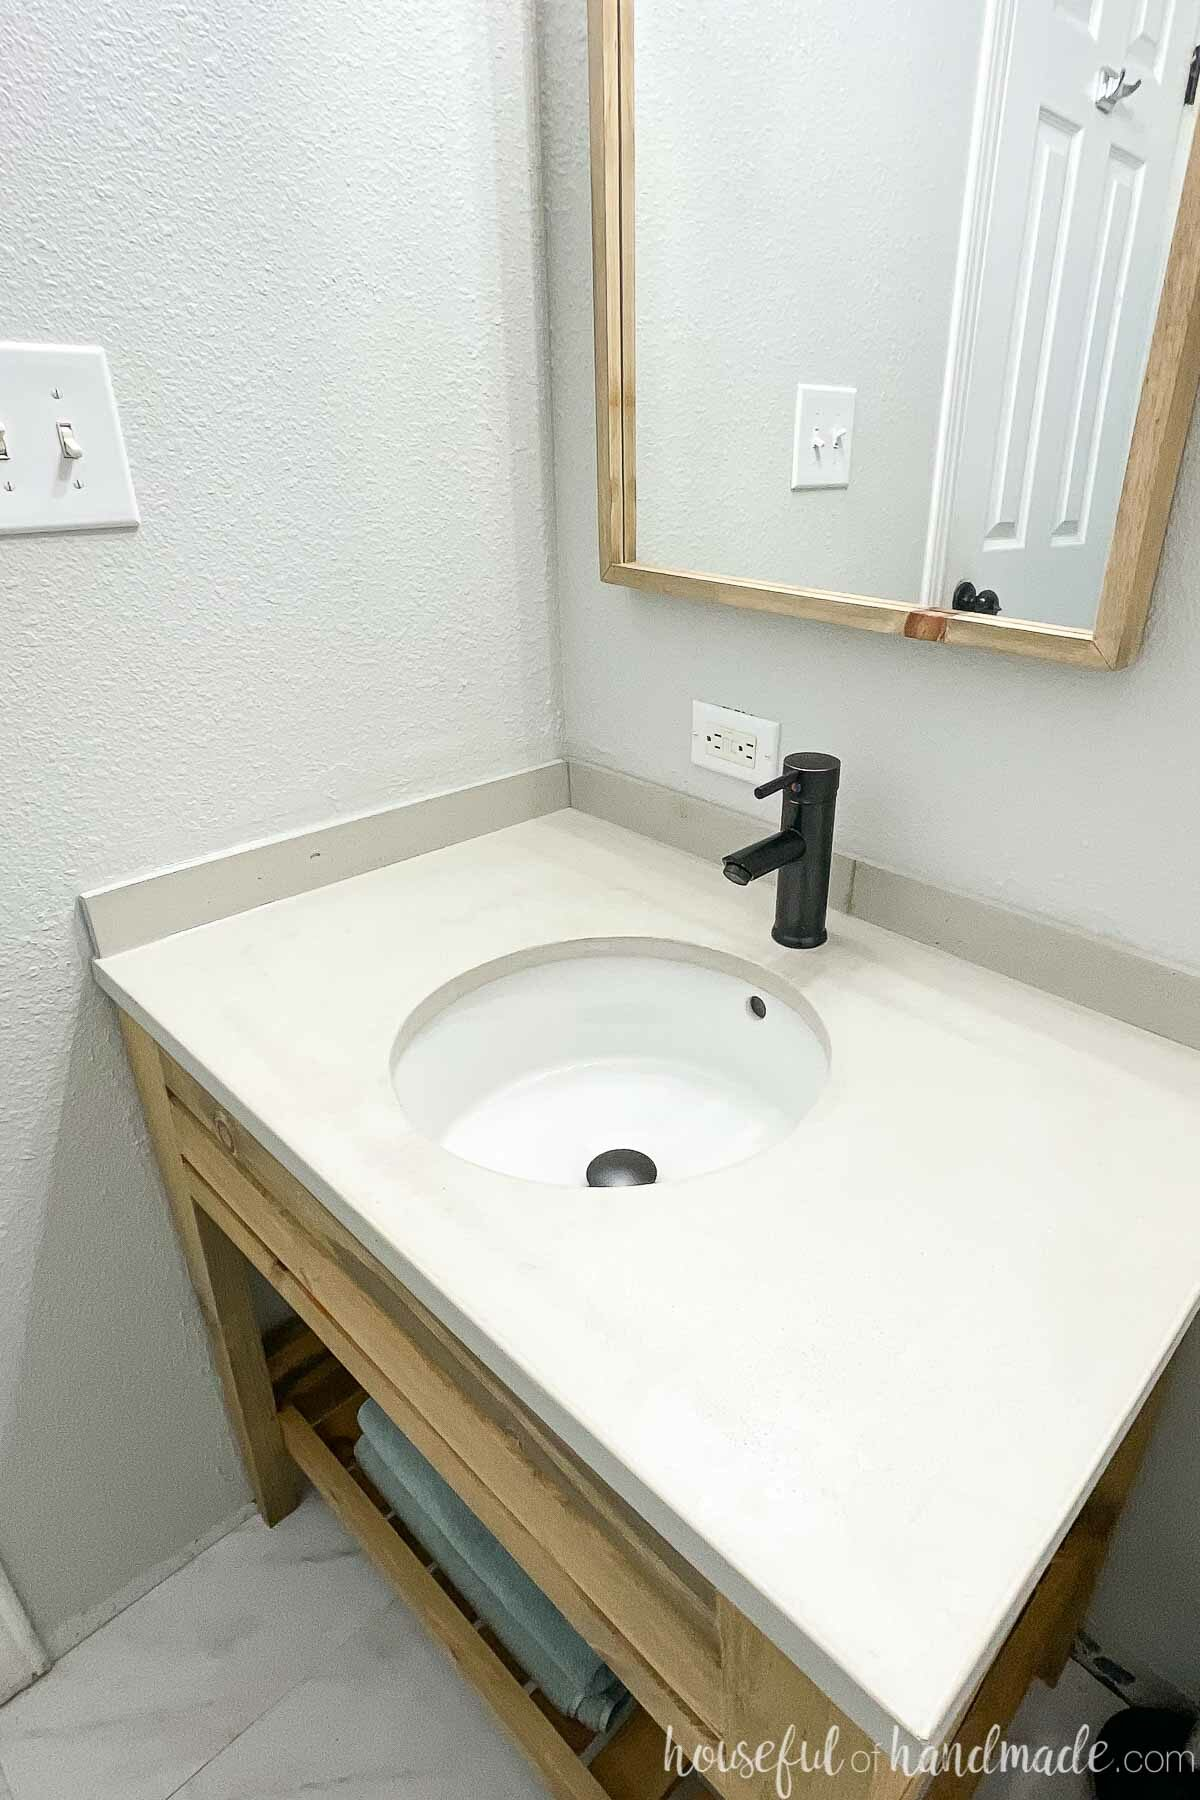 Angled view of the top of the concrete vanity top installed on the wood vanity in the bathroom remodel.